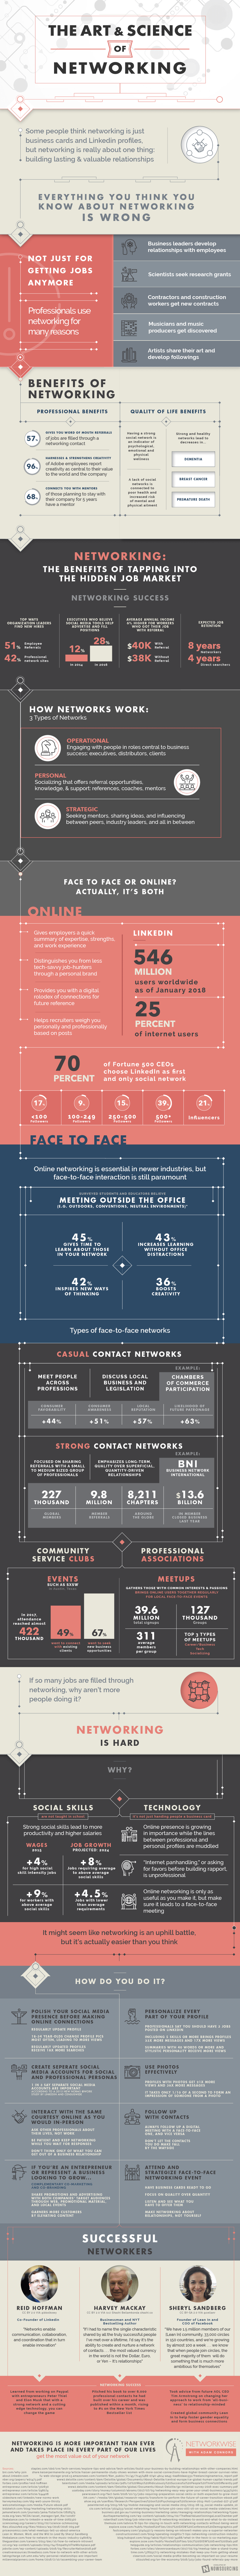 Why Everything You Think You Know About Networking is Wrong! - Infographic